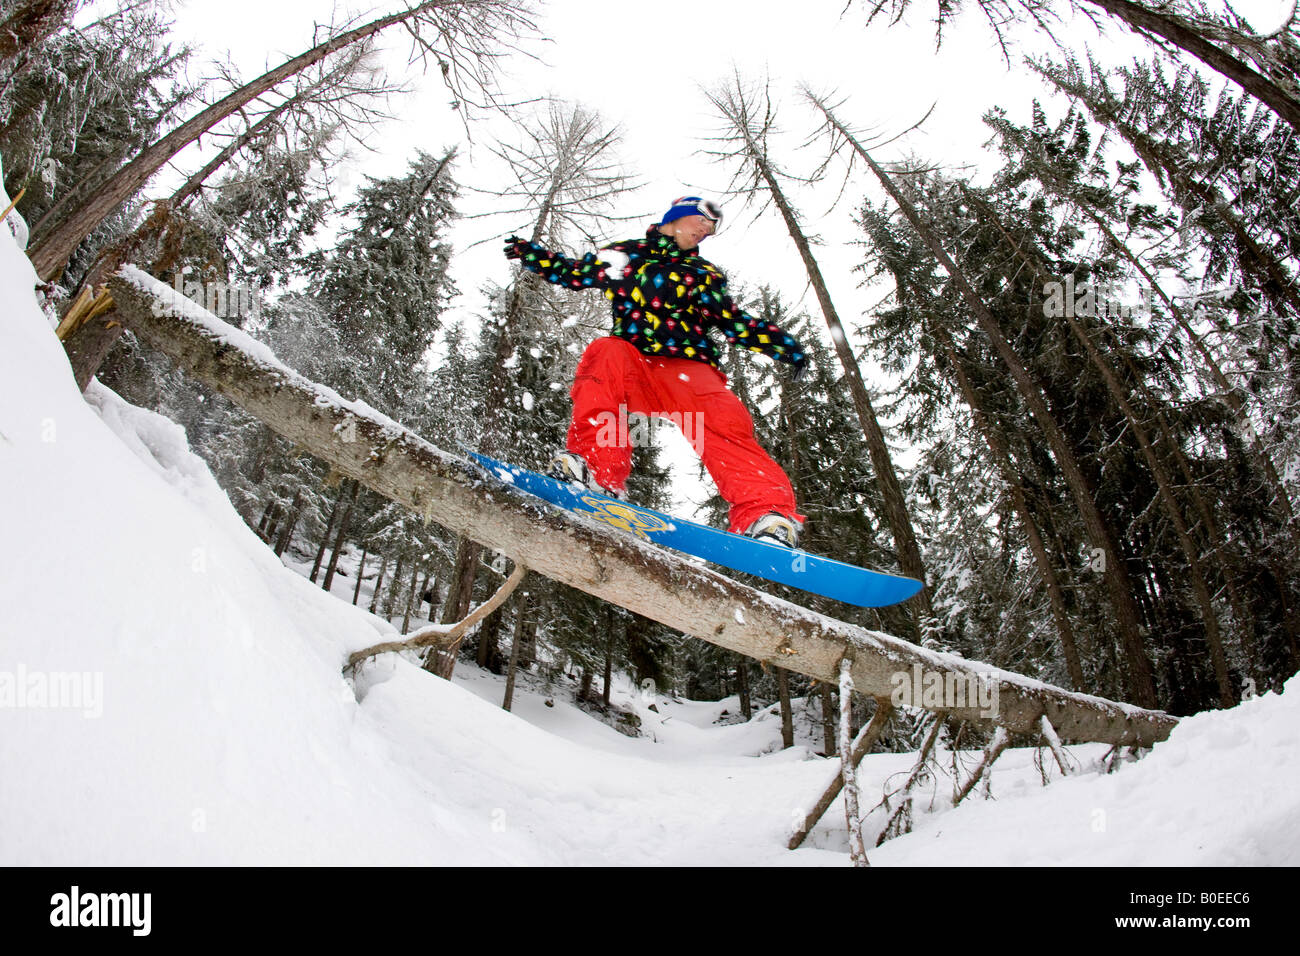 Snowboarder slides a tree in the back country. - Stock Image